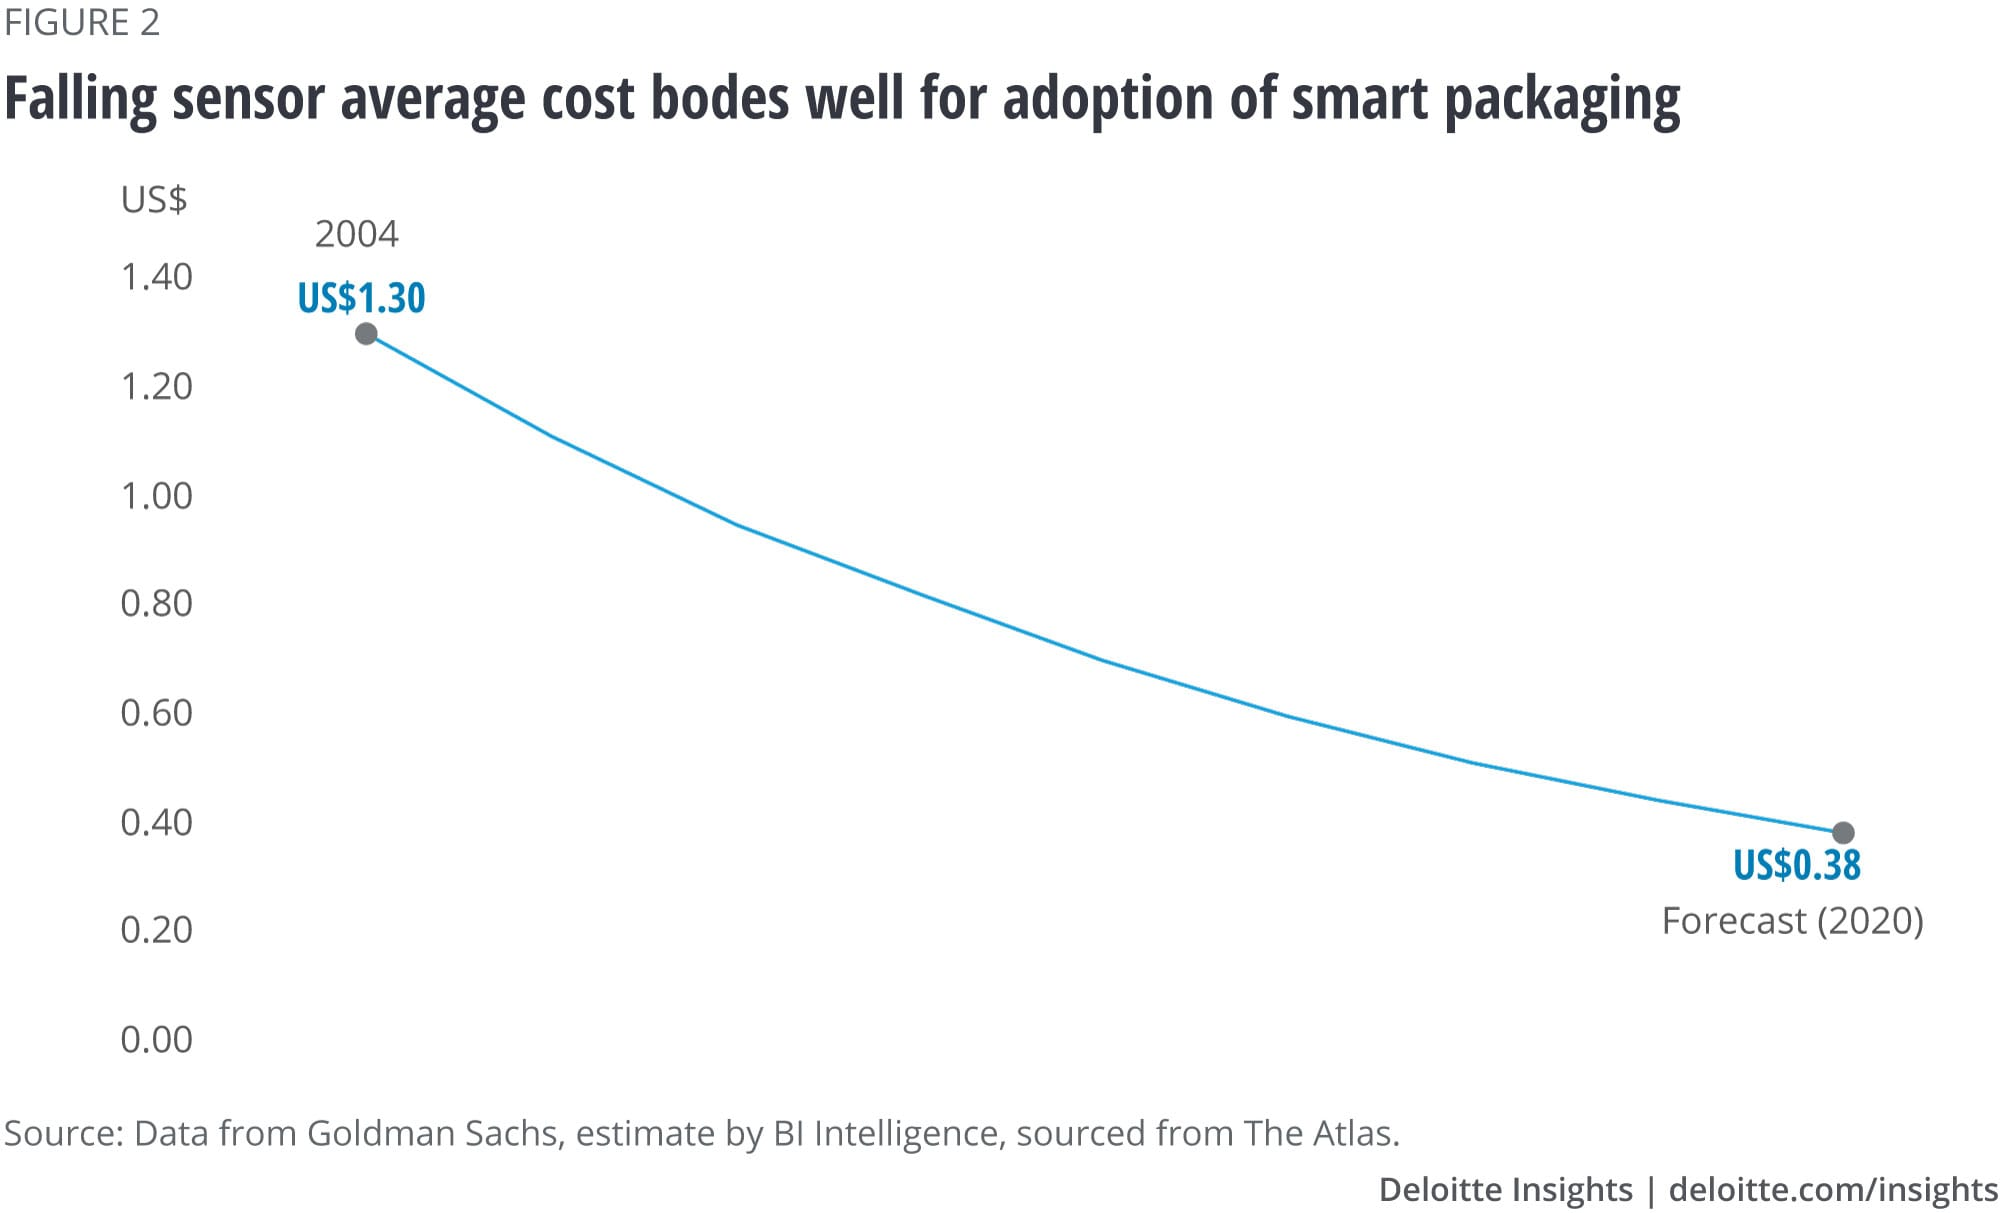 Falling sensor cost bodes well for adoption of smart packaging